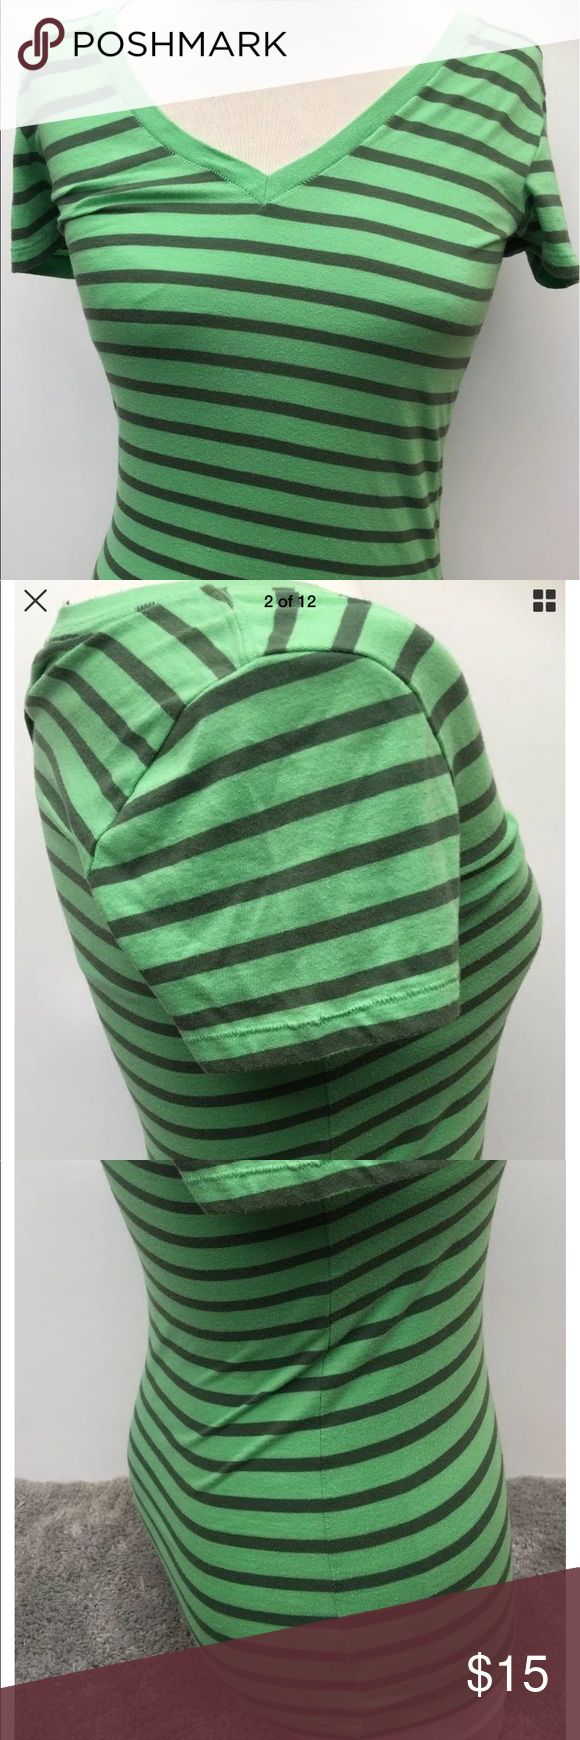 VS PINK T-Shirt Size Small Womens Green Stripes Victoria Secret Vs Pink Blouse Tops Womens Size Small Size Fashion CausalTee Comfy Online Shopping Graphic Pre Owned Cute  Measurements: Green Shirt XS 27 inches (From top of shoulder to bottom of Shirt) 15 1/2 inches (From arm pit to arm pit) PINK Victoria's Secret Tops Tees - Short Sleeve